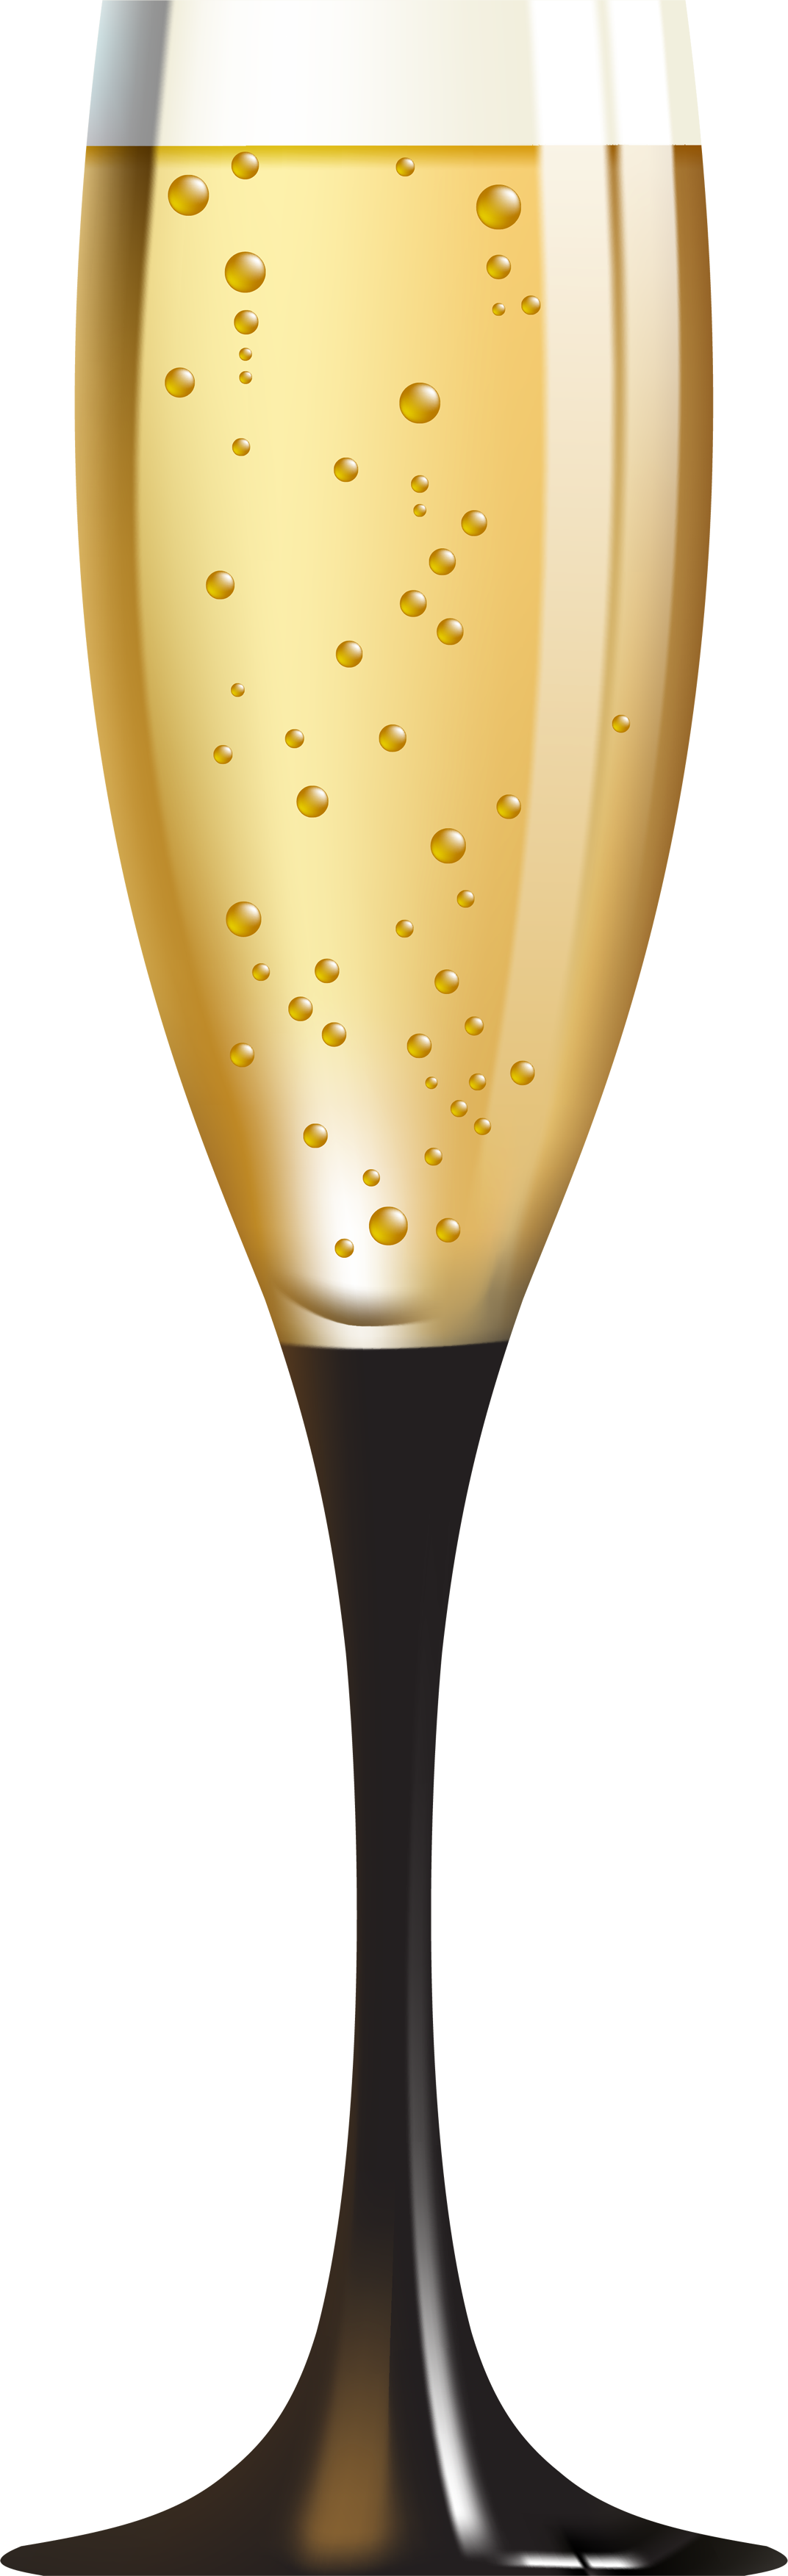 Champagne clipart champange. Png images bottle glass